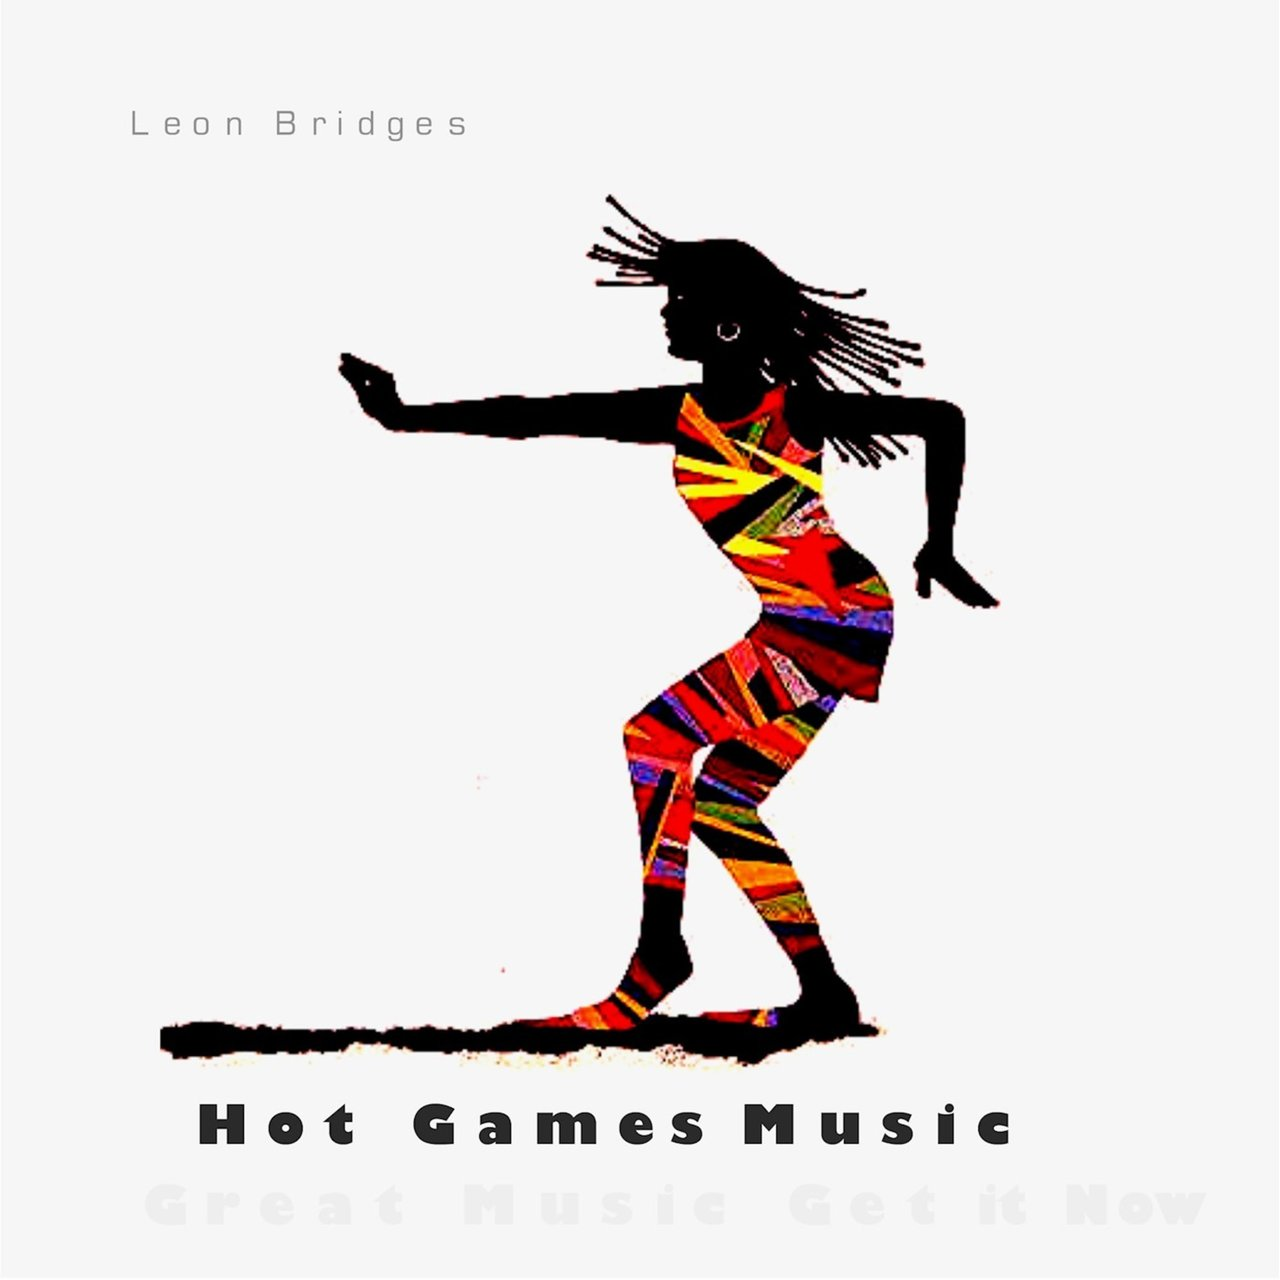 Hot Games Music